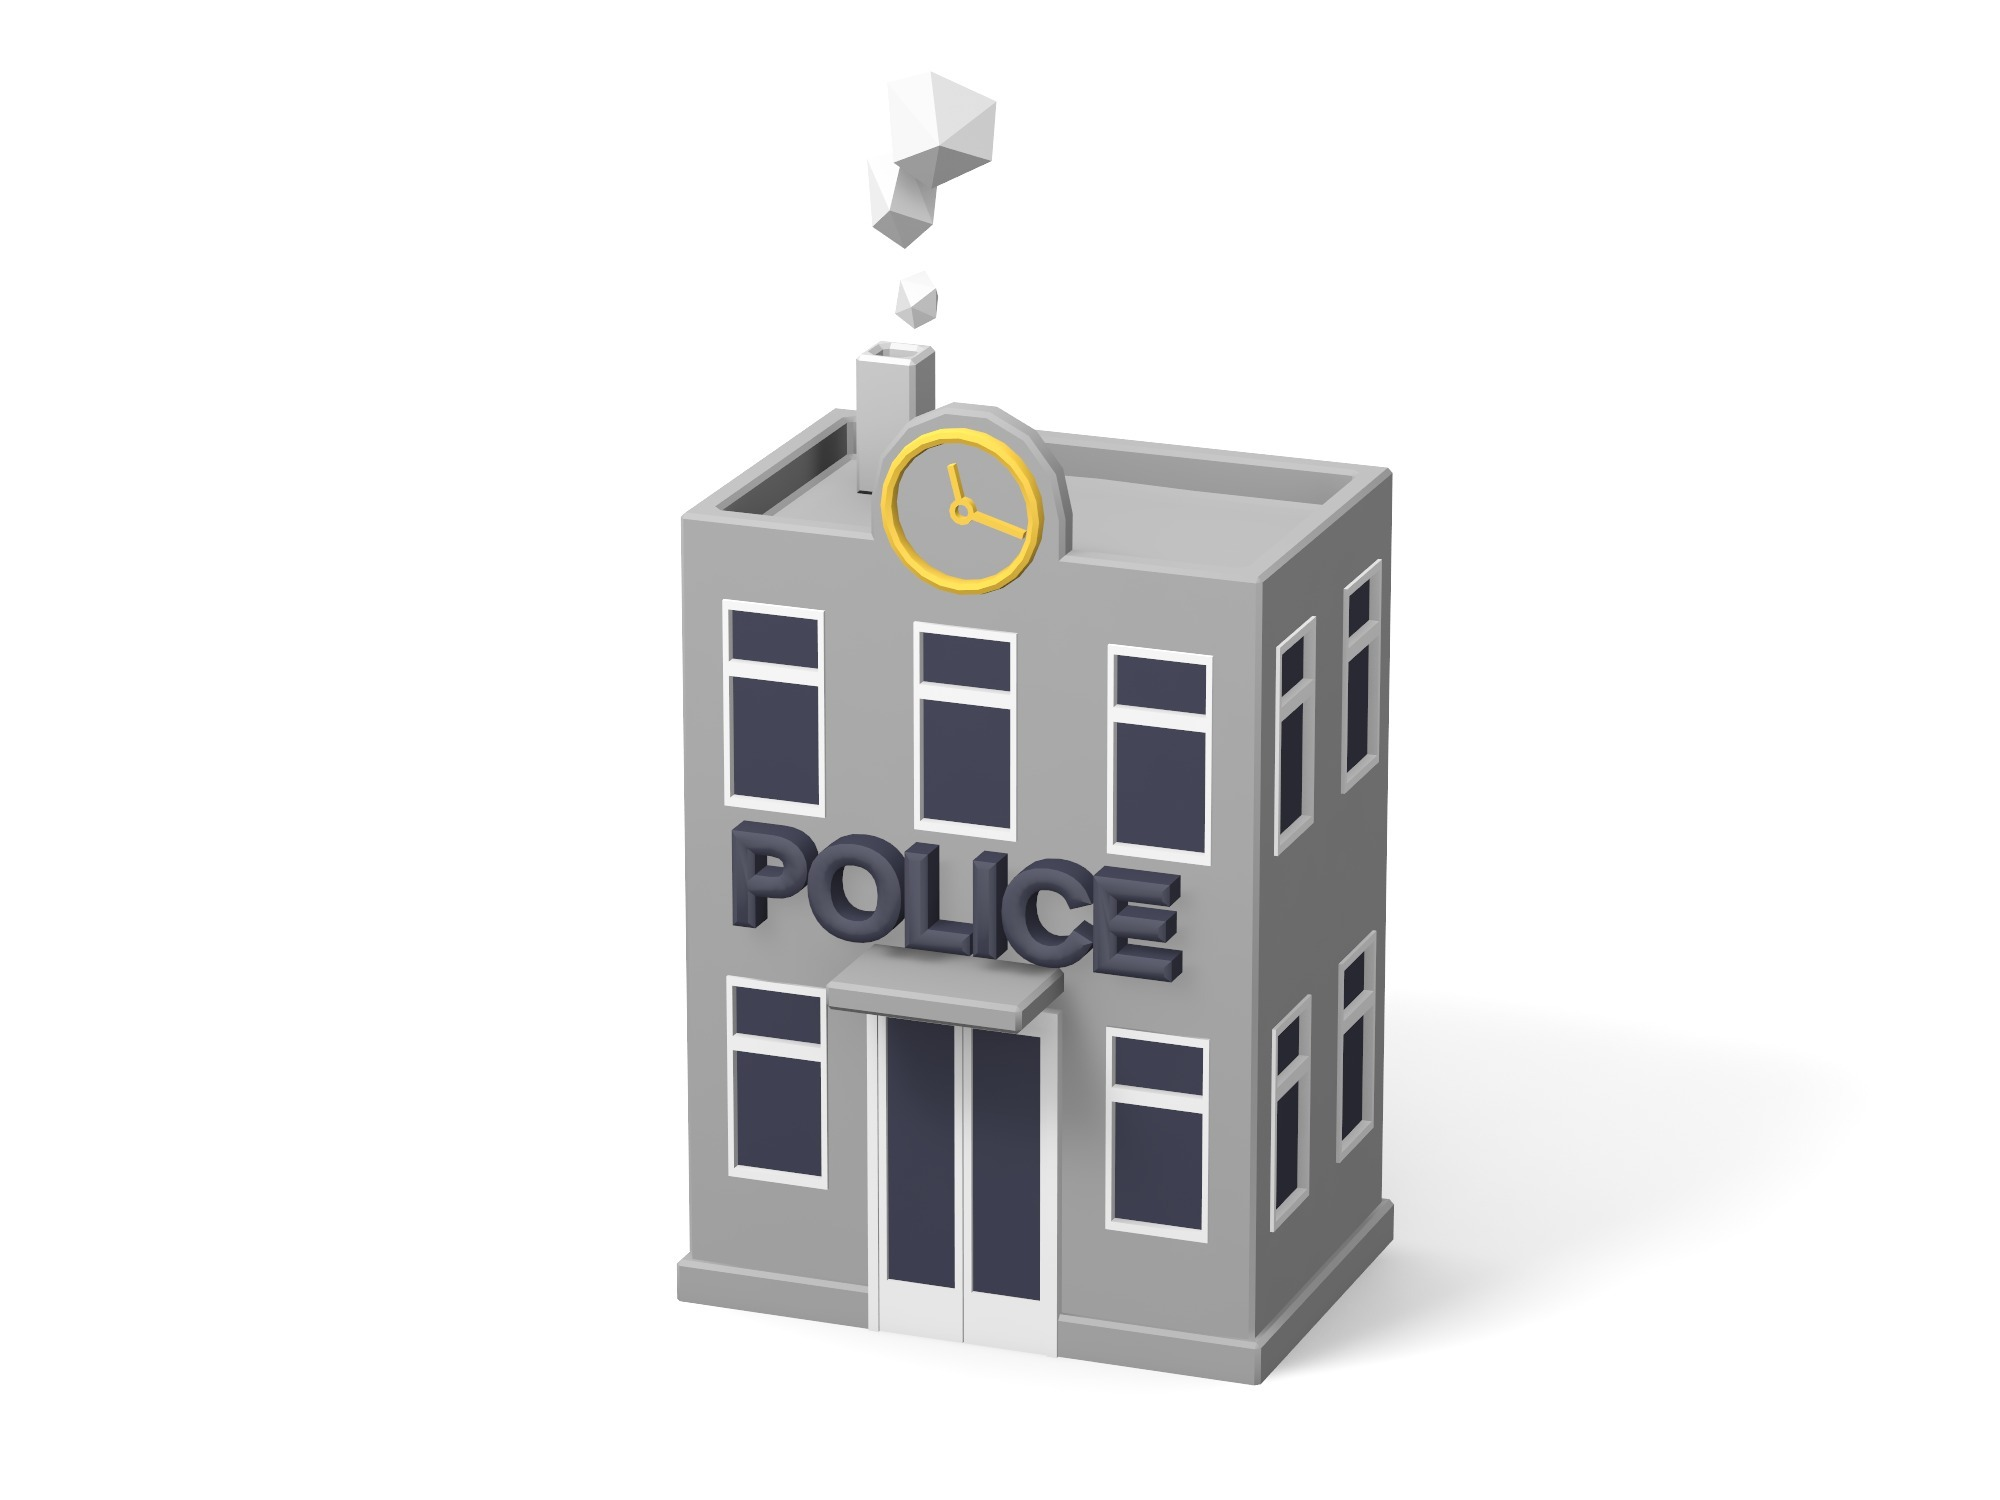 Police station building - 3D design by Vectary assets Aug 20, 2018